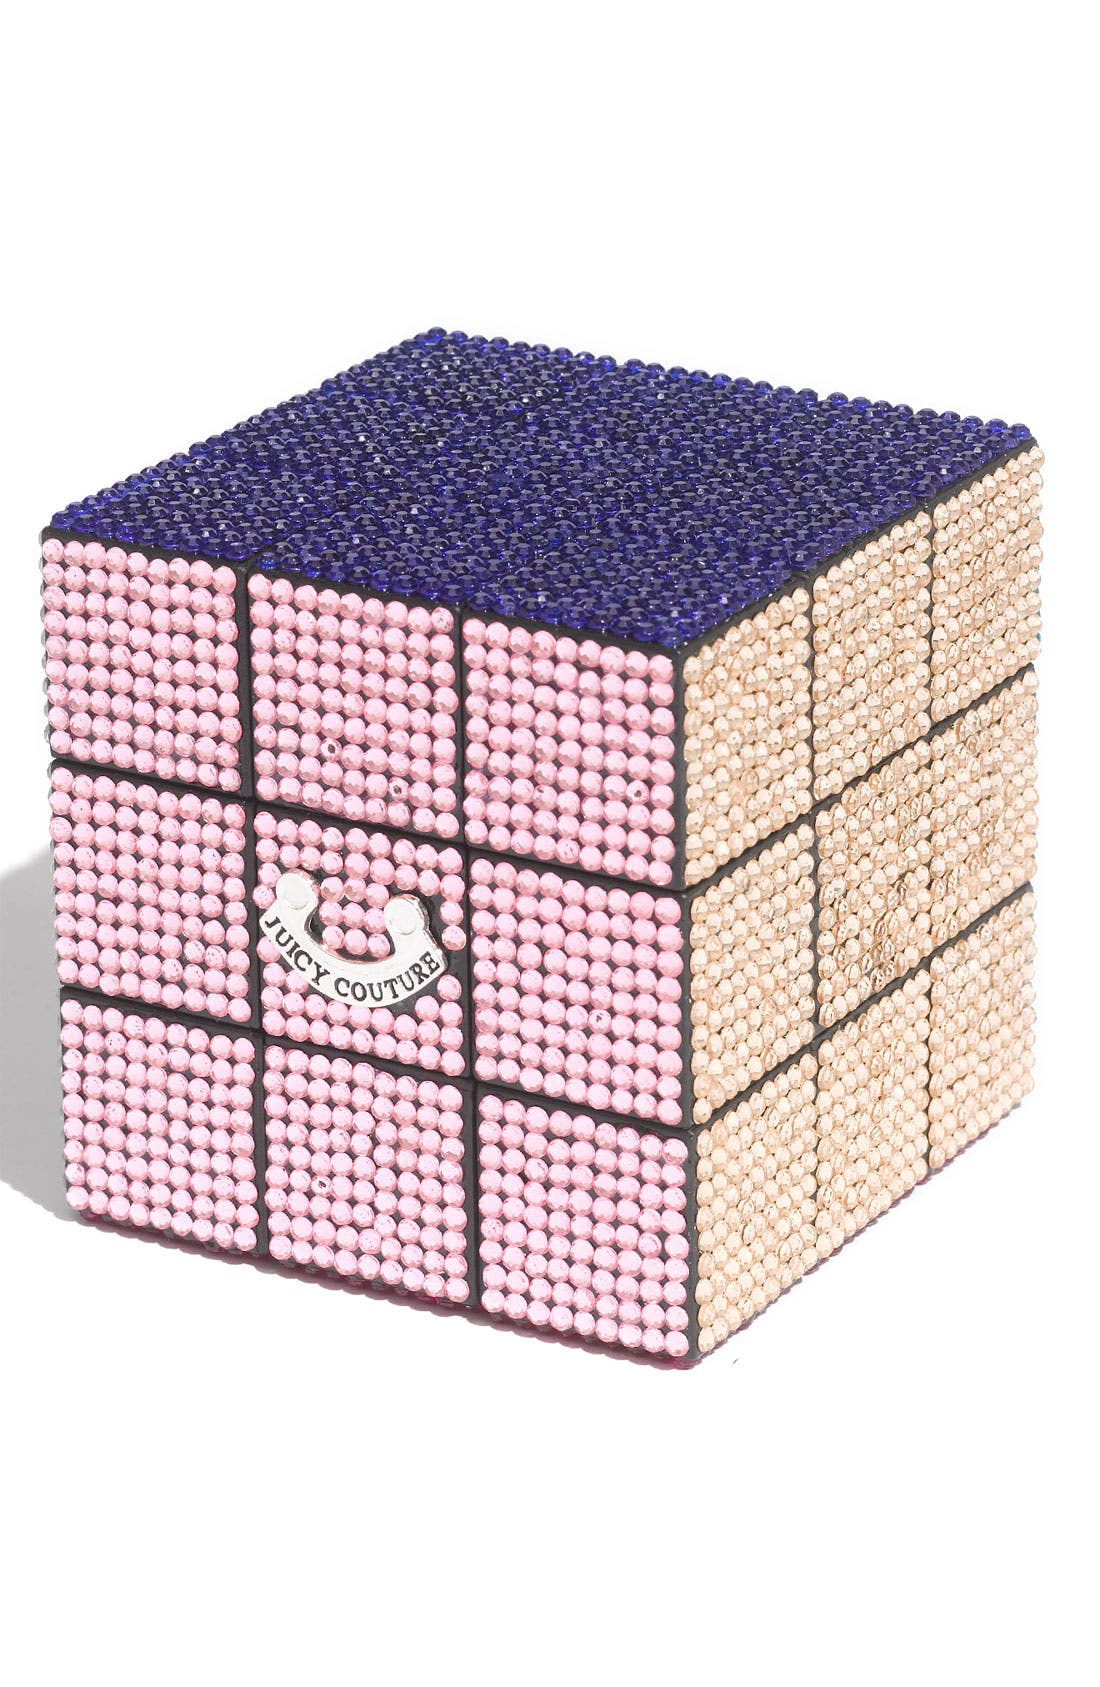 Embellished Puzzle Cube,                         Main,                         color, Multi